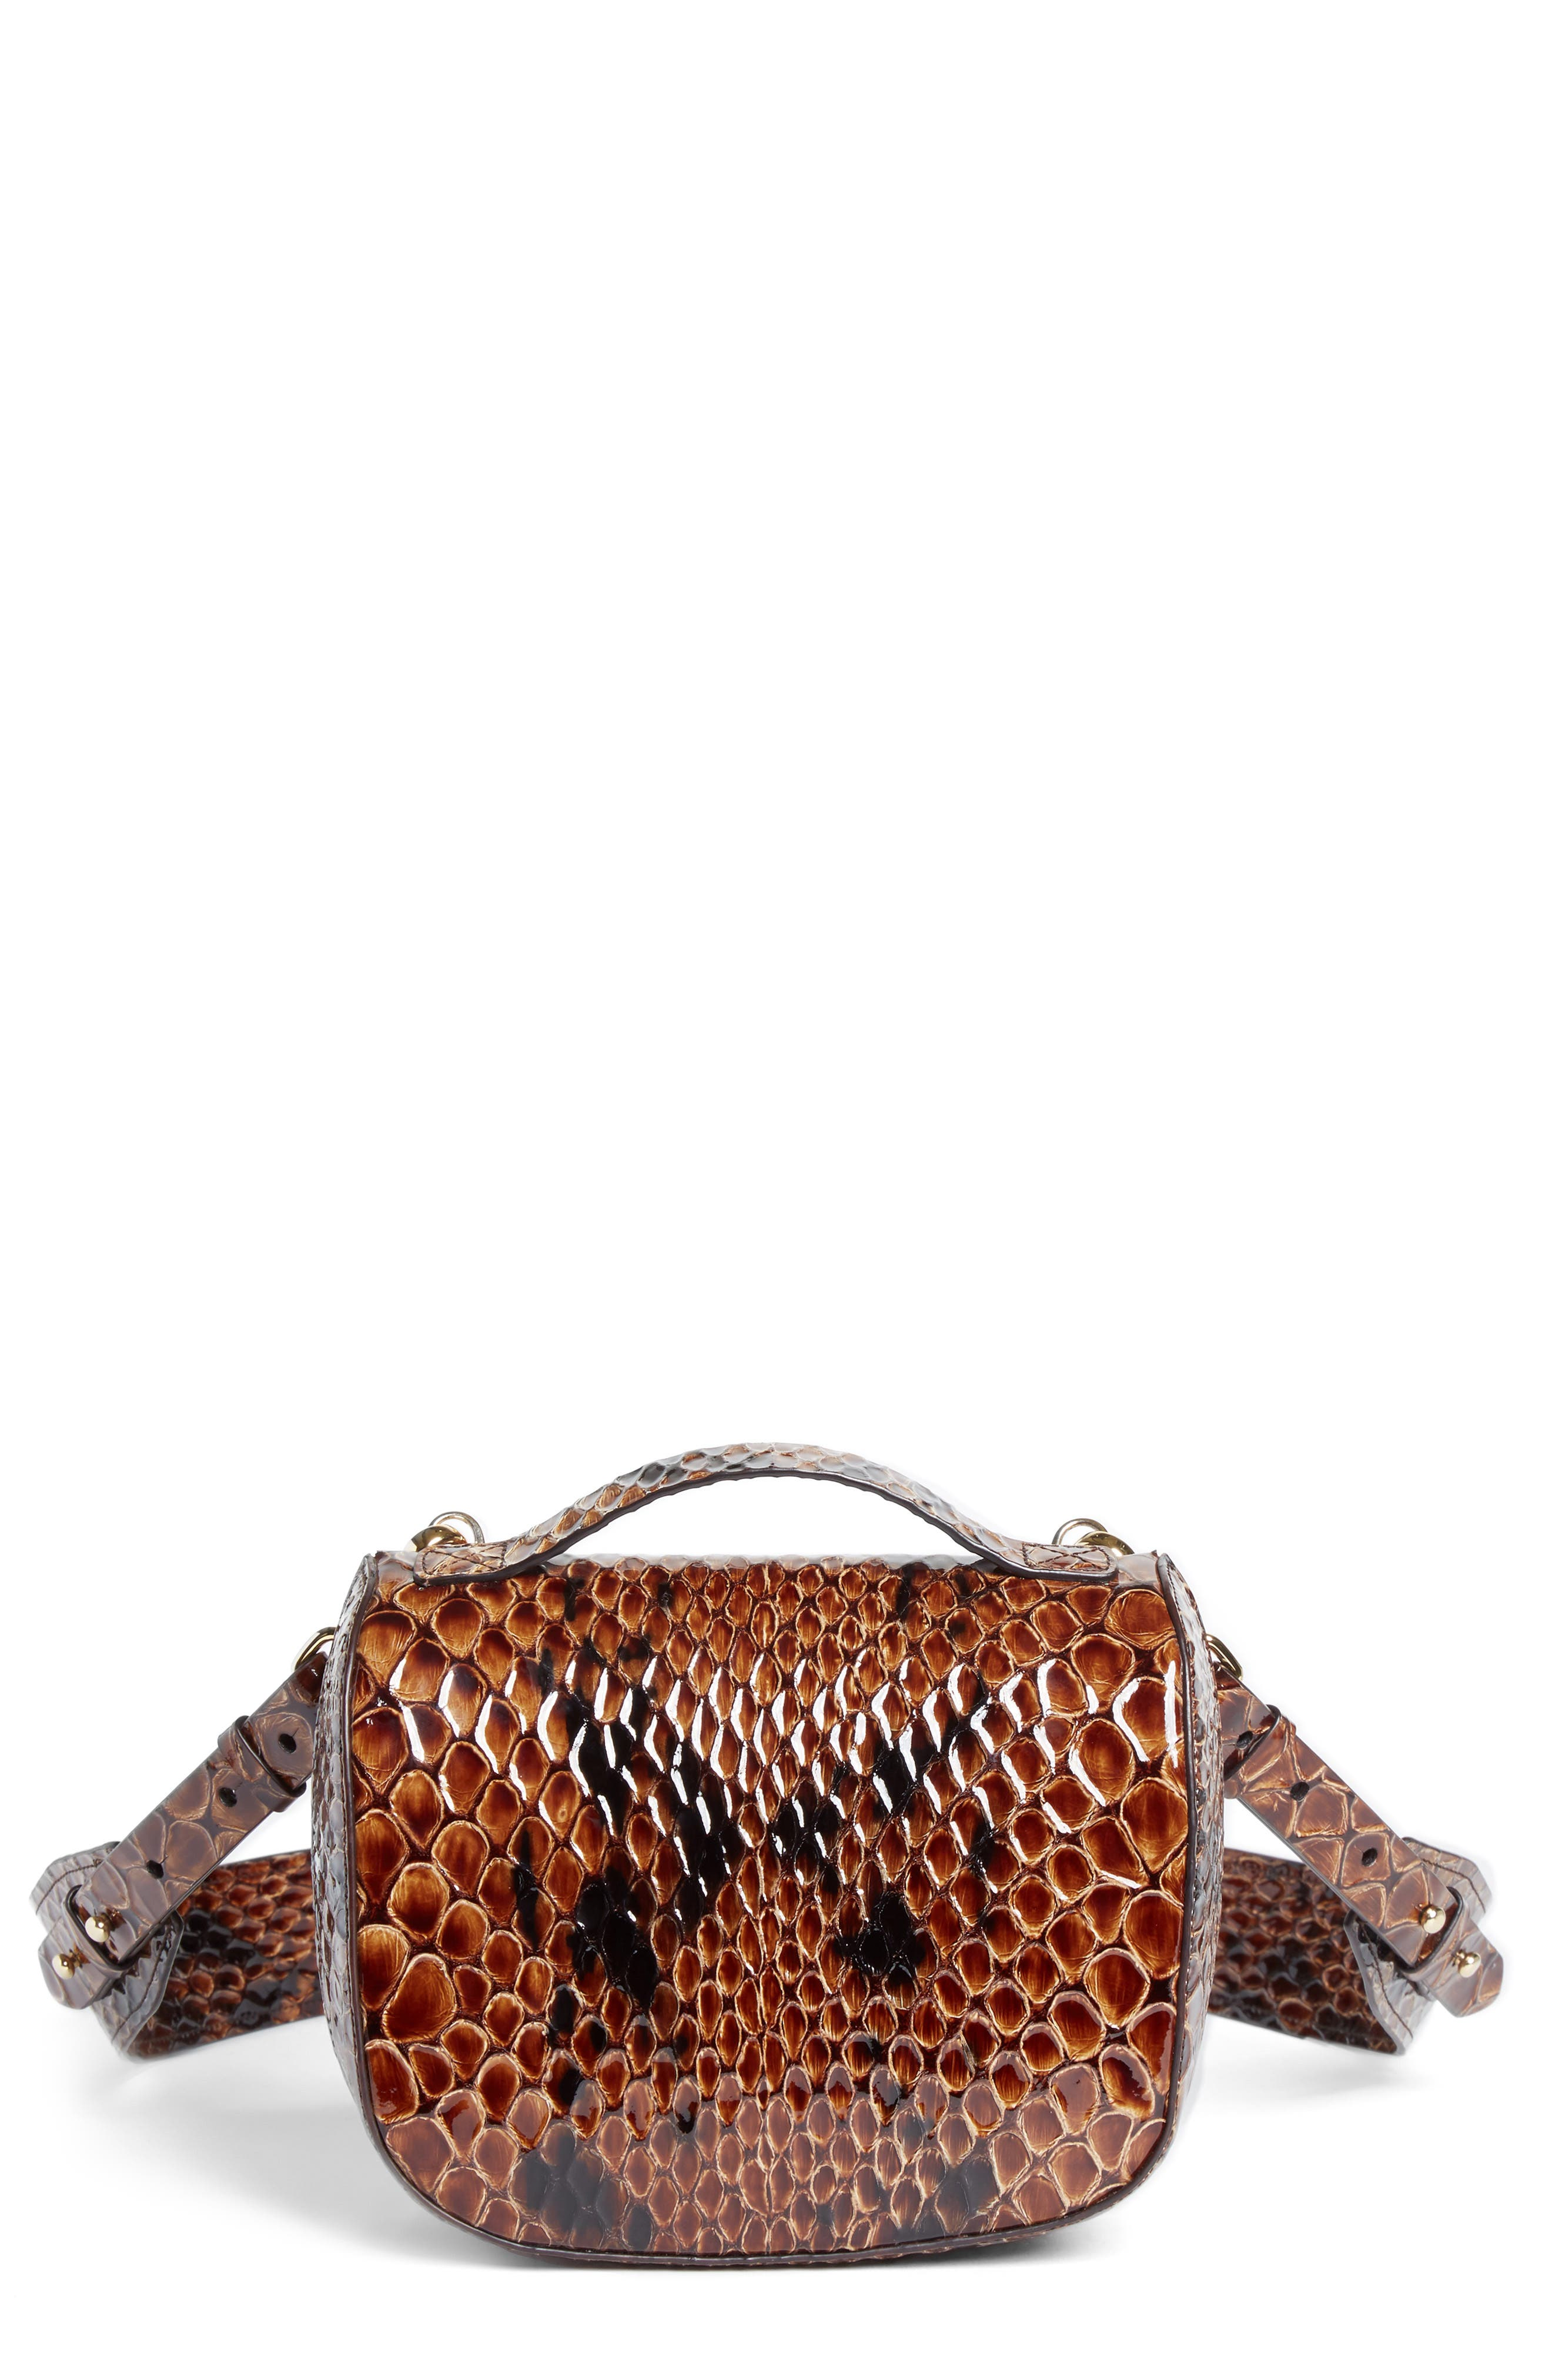 Alternate Image 1 Selected - Simone Rocha Small Snake Embossed Leather Box Bag